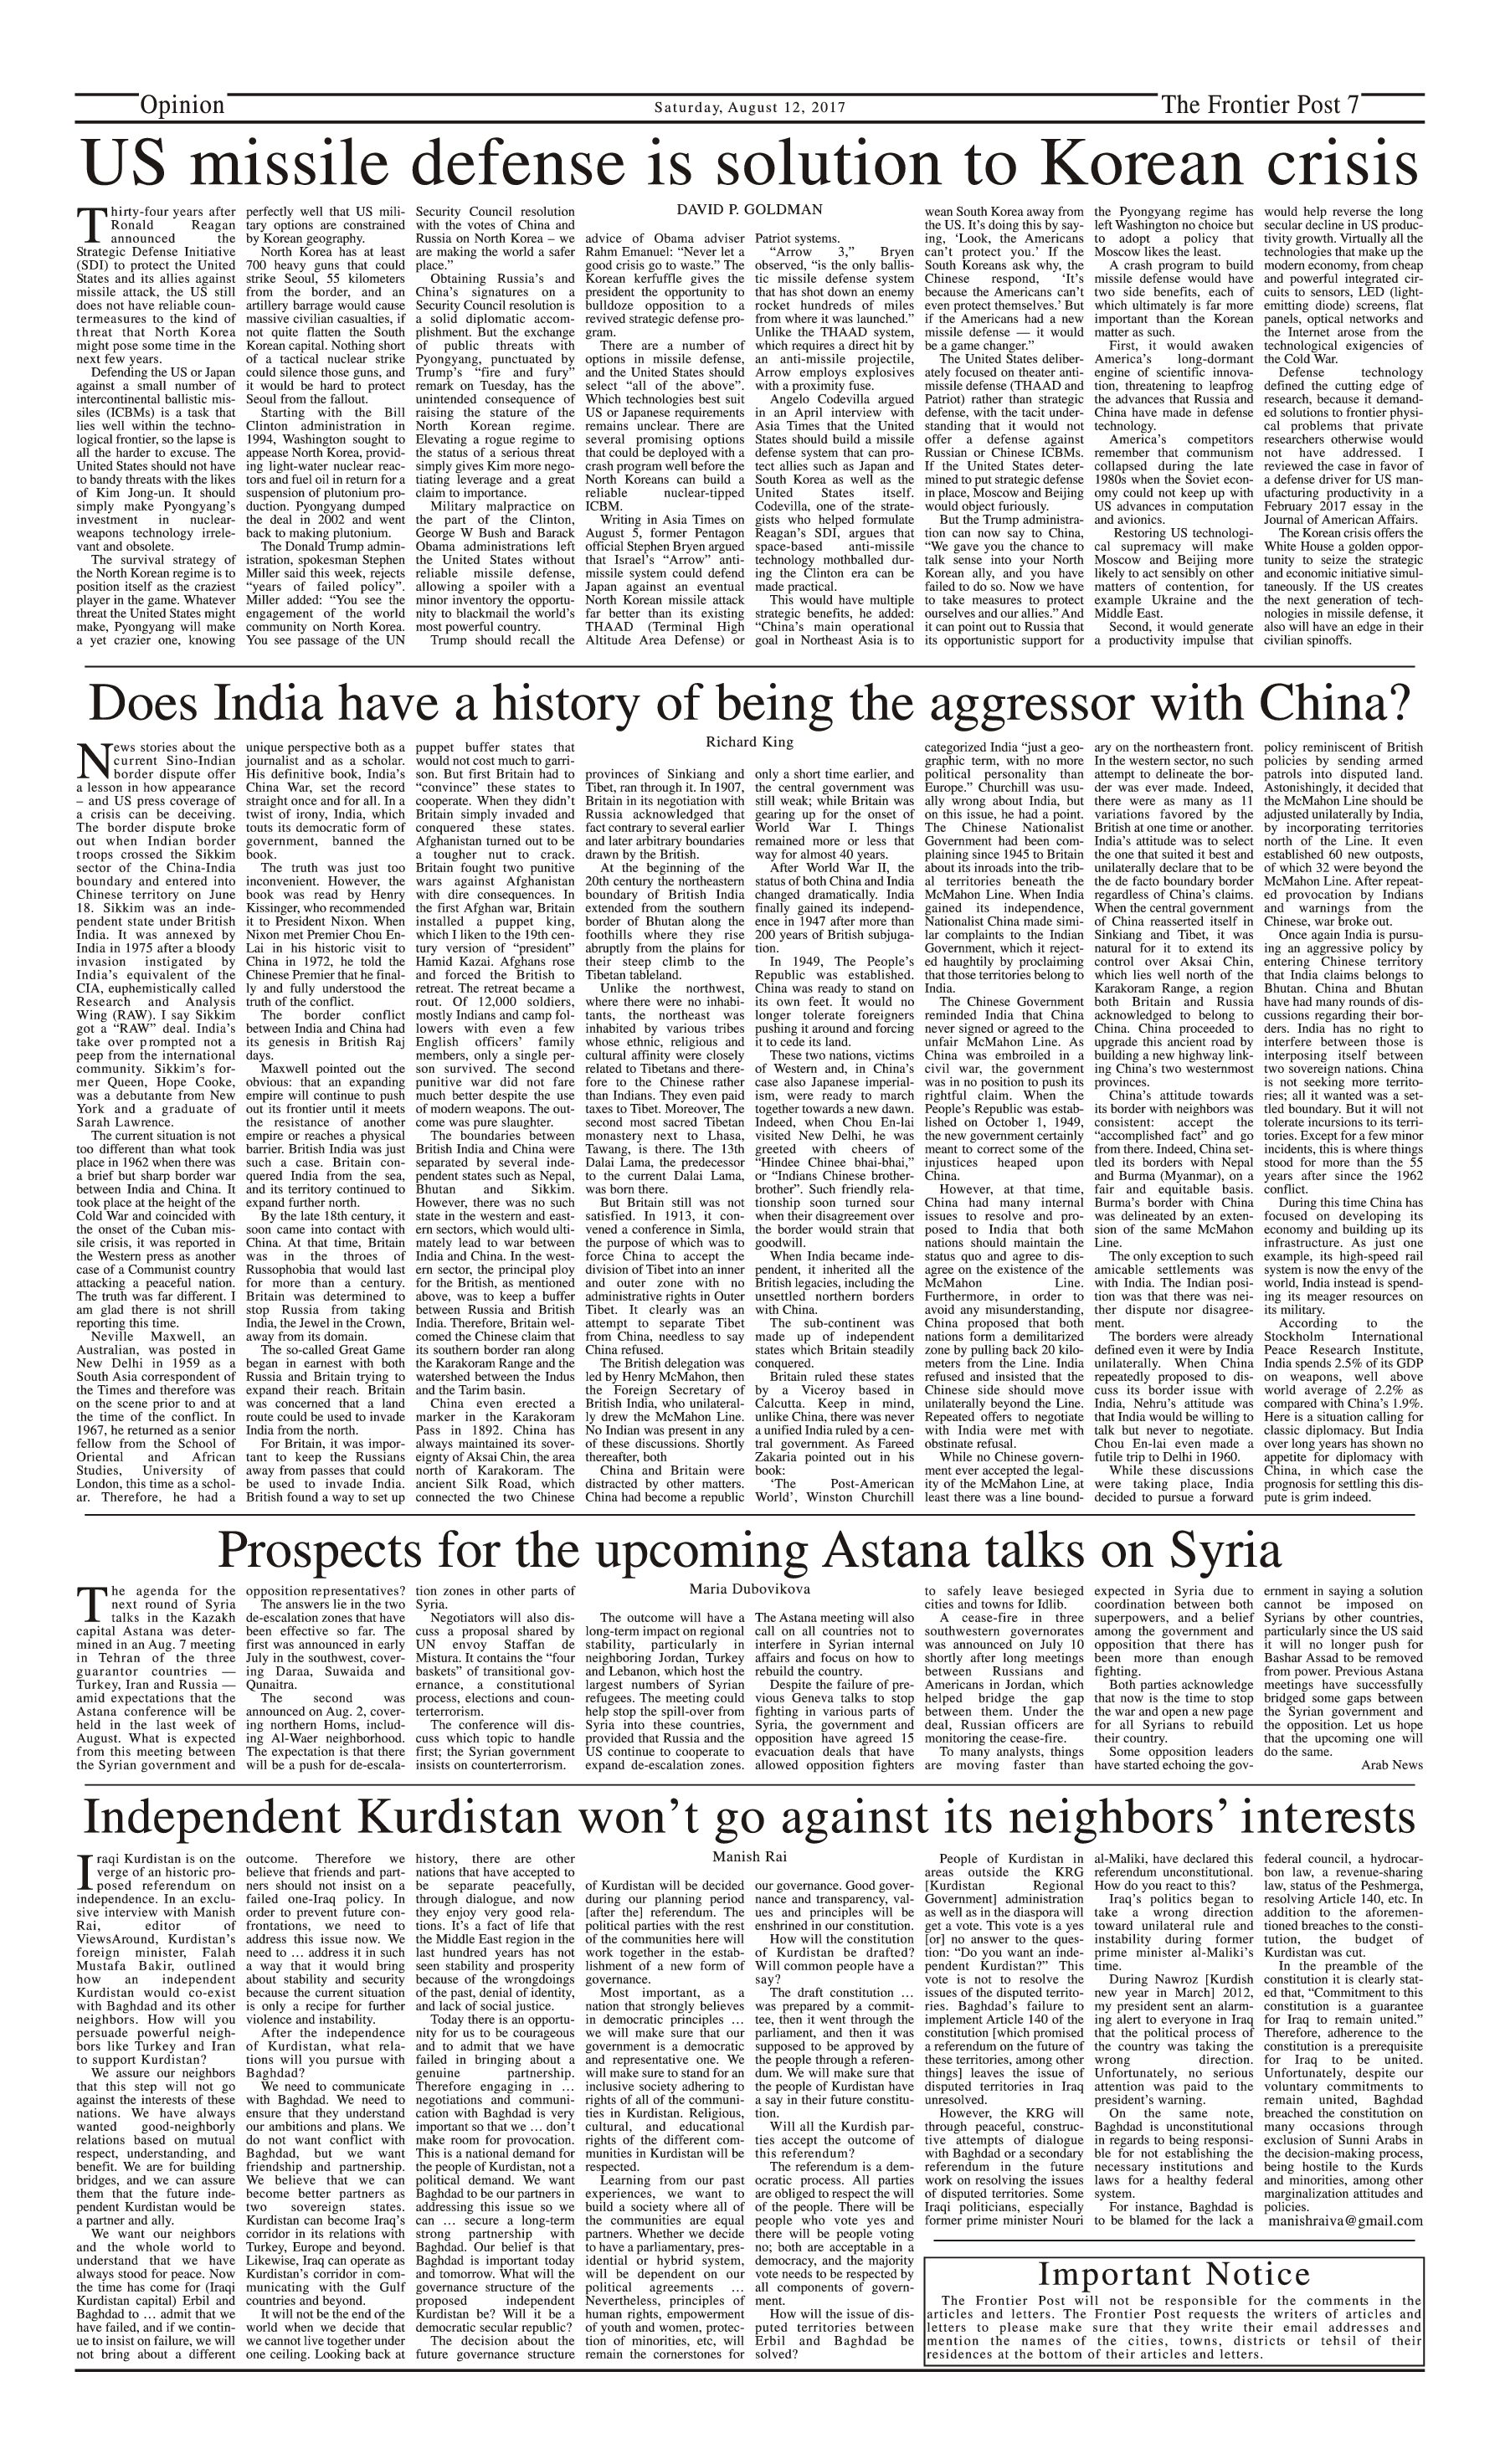 Opinion Page 12